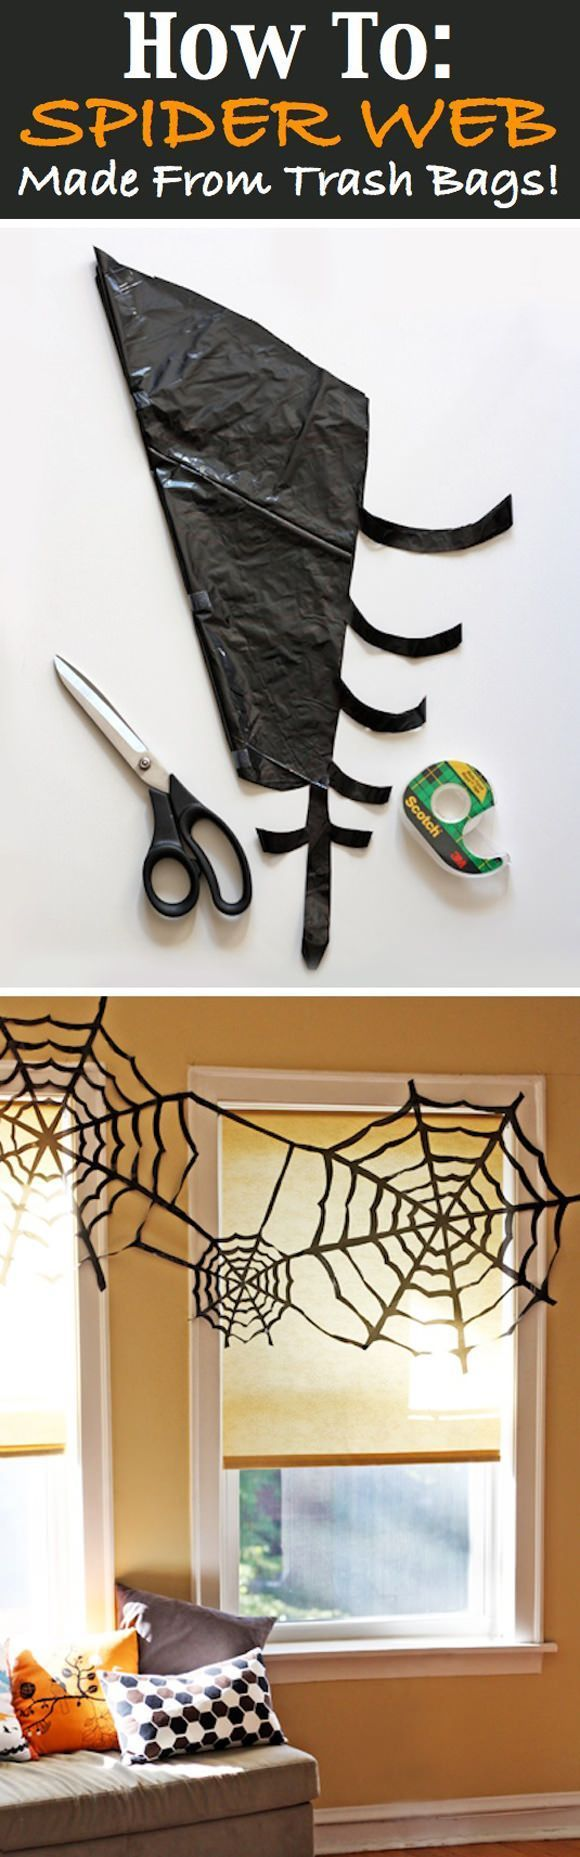 These DIY spiderwebs made from trash bags are the perfect Halloween decorations.